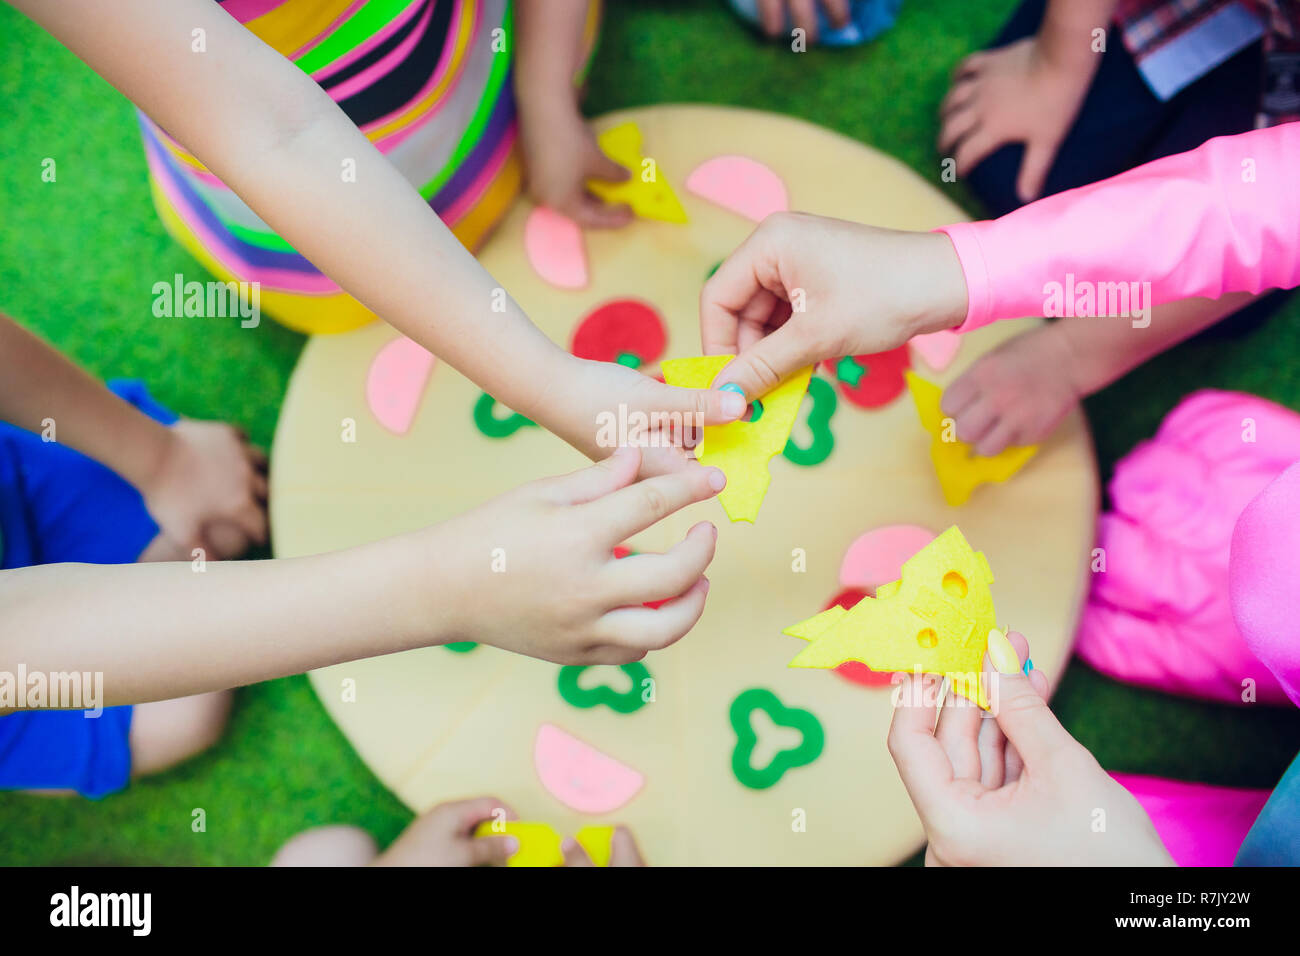 kids are playing. pillow pizza. The hands fastening with Velcro ingredients for pizza - Stock Image